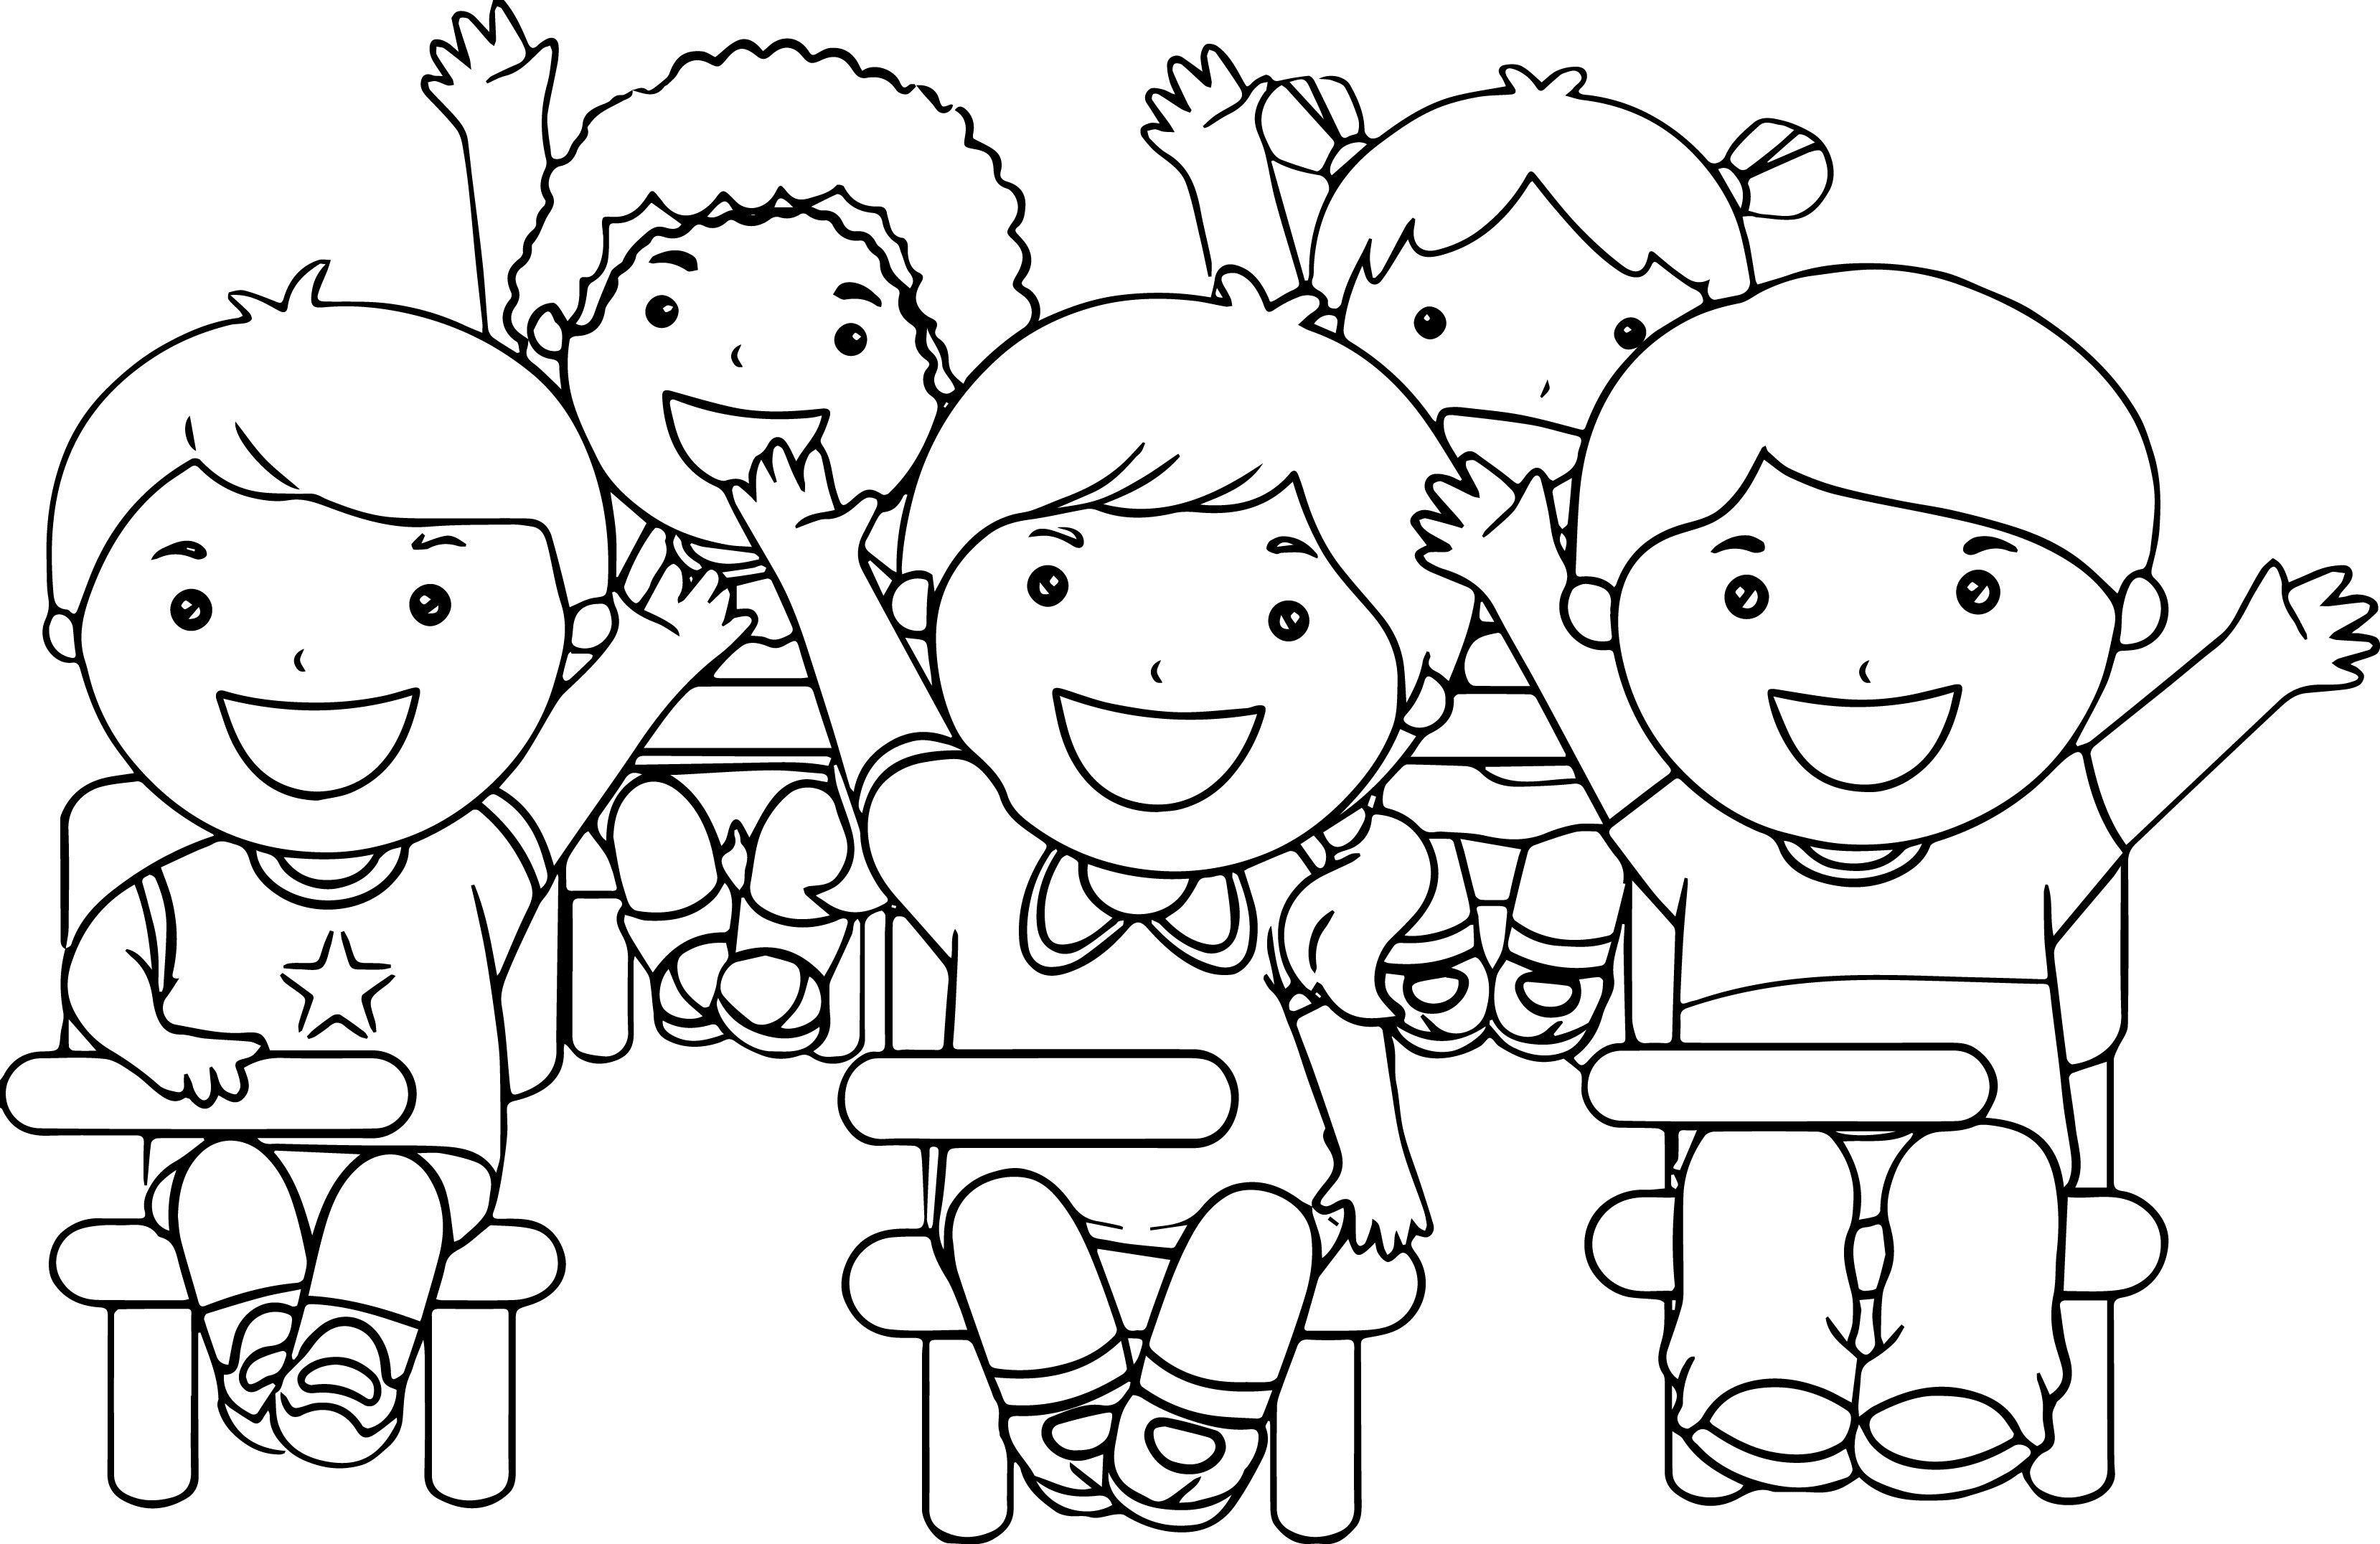 At-The-School-Children-Coloring-Page | Pinterest | School children ...